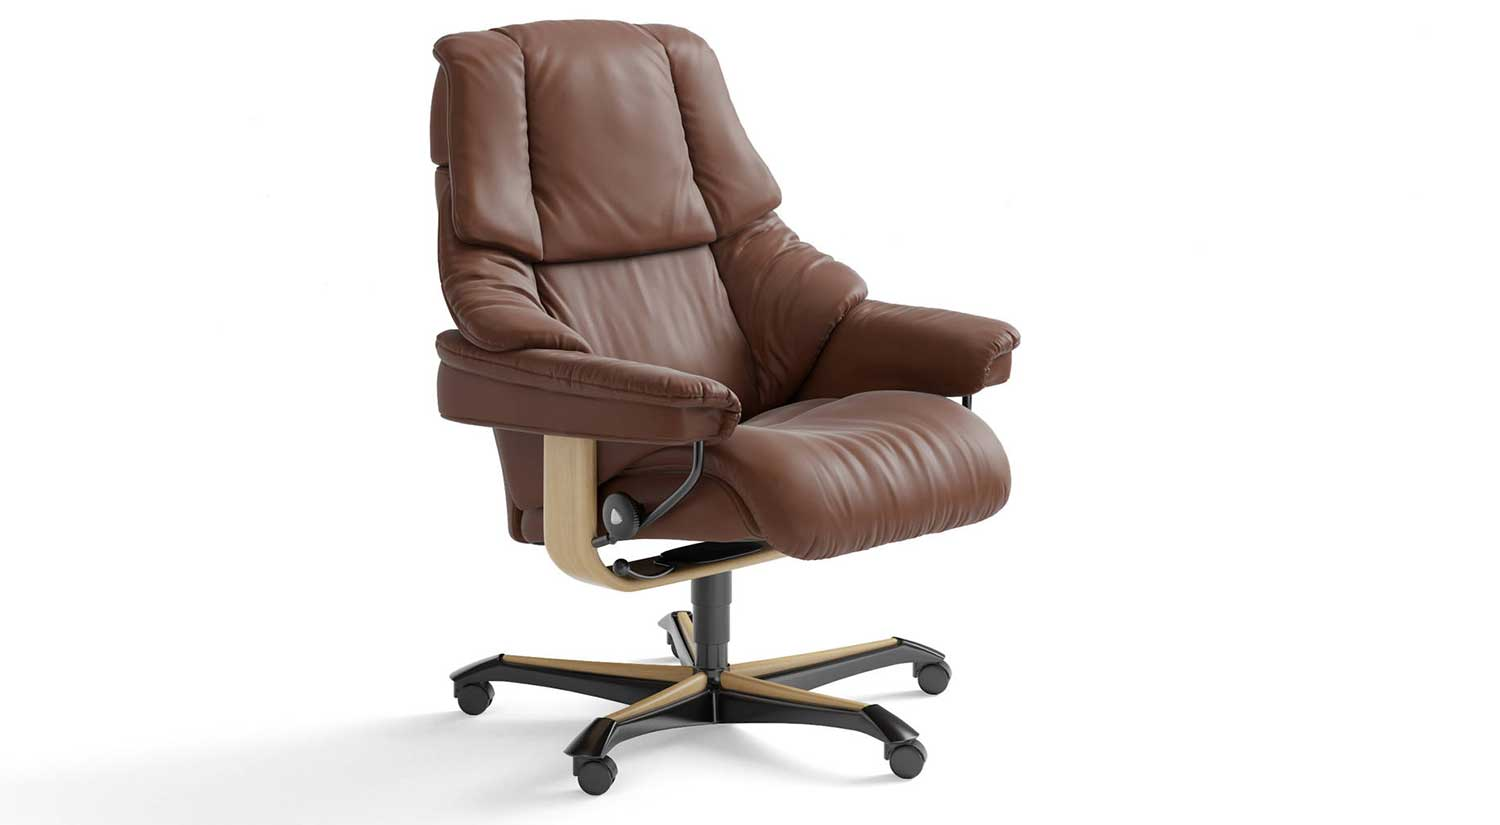 Stressless Office Chair Circle Furniture Stressless Reno Office Chair Office